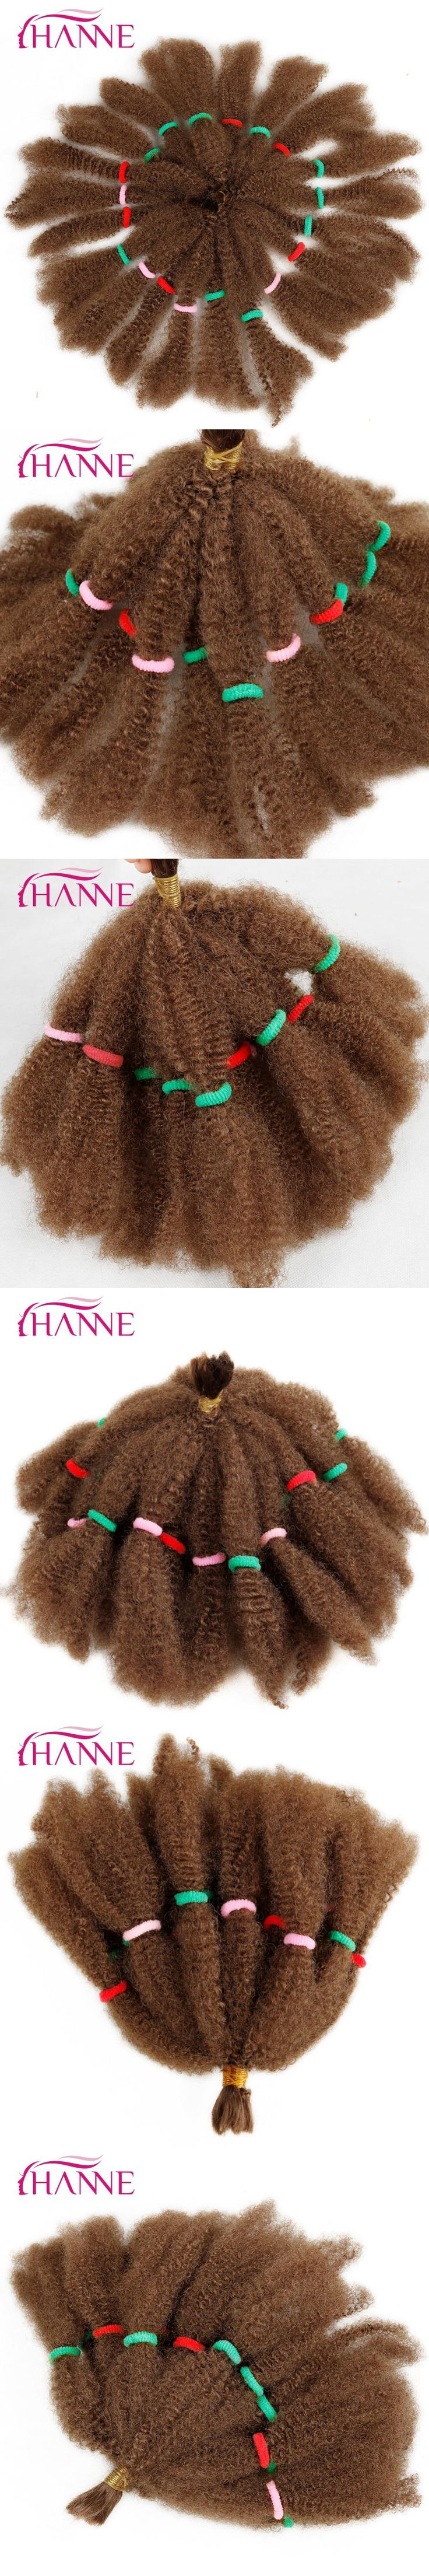 HANNE Afro Extensions Bulk Hair Small Kinky Curly 12Inch Blonde Or Ombre Mixed 1B#BUG Pre Braided Hair Extension Synthetic Weave